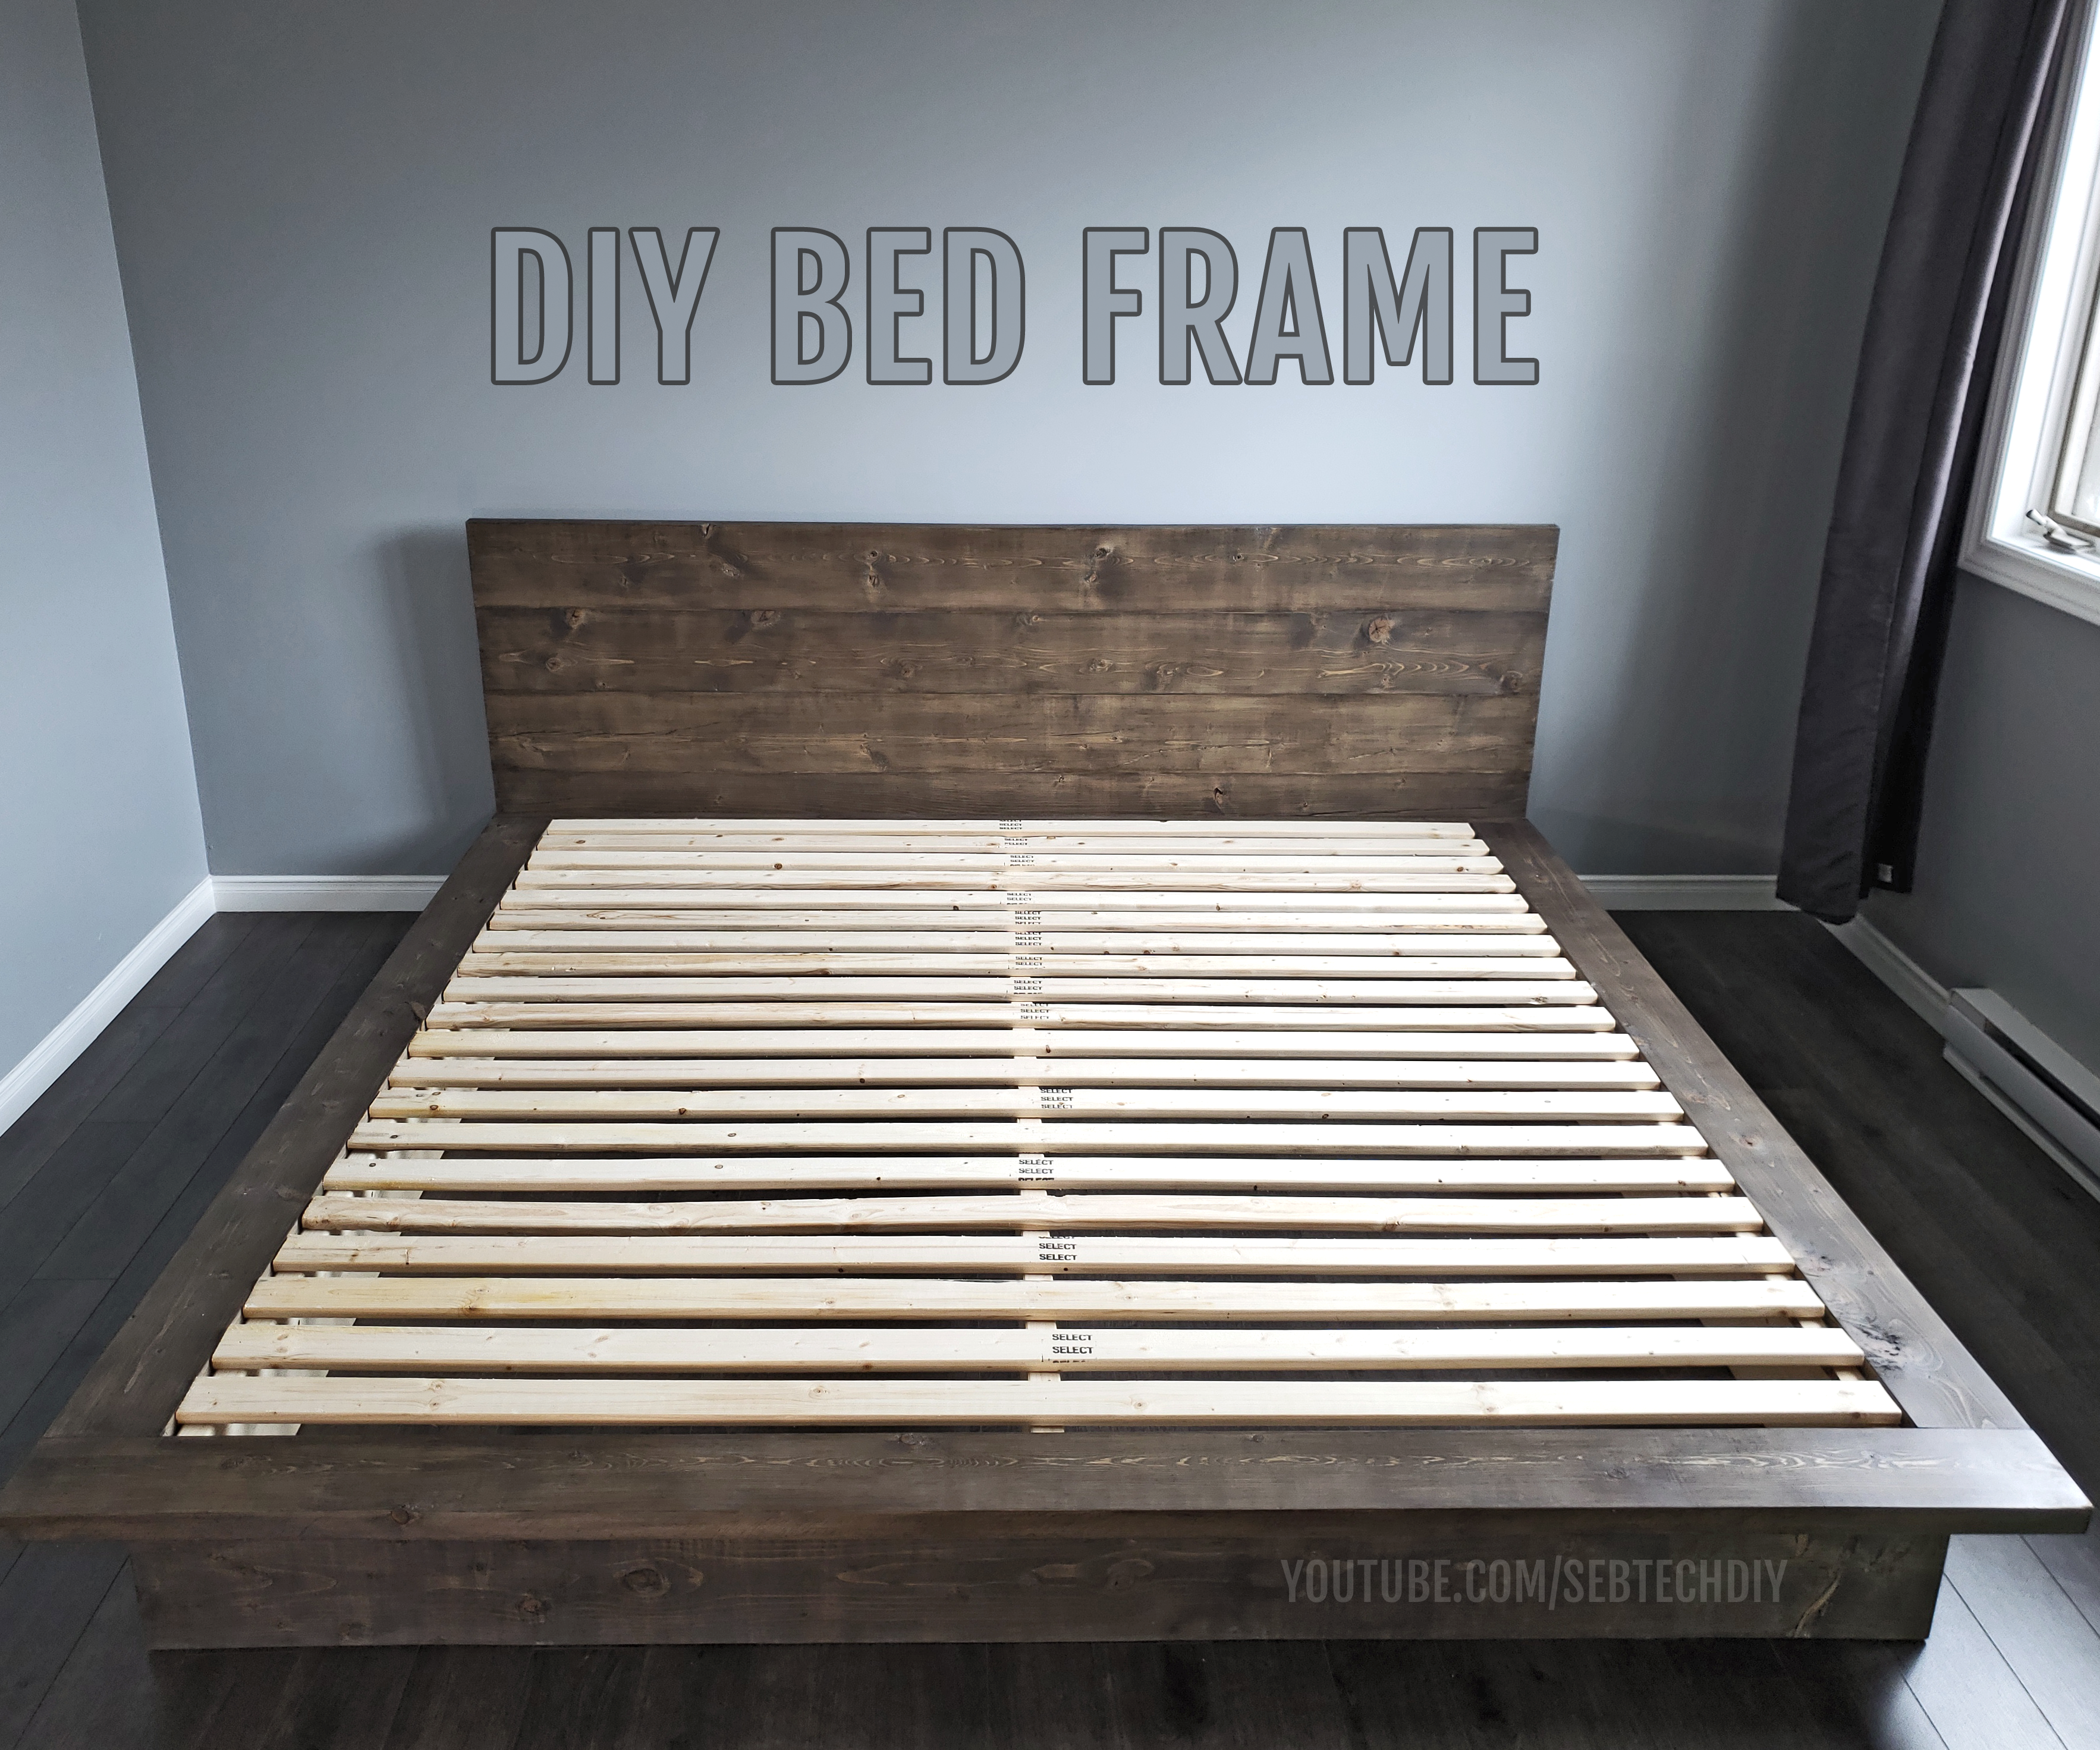 Diy Bed Frame 10 Steps With Pictures Instructables